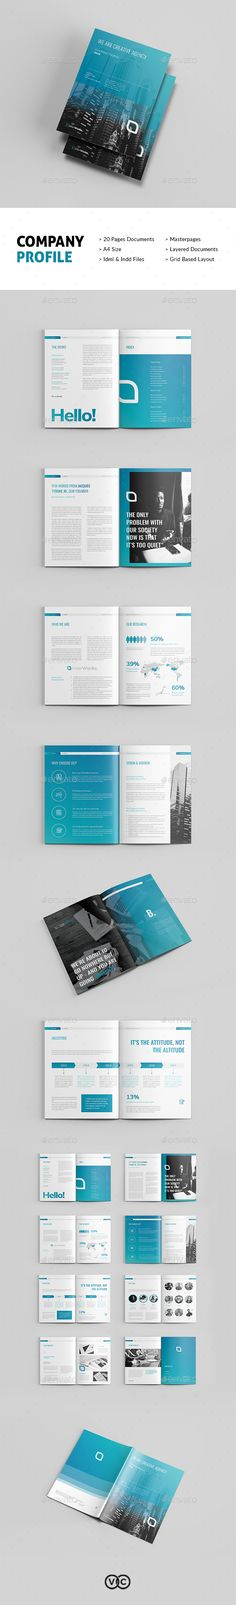 Company Profile Brochure Template InDesign INDD - Download here: https://graphicriver.net/item/company-profile/21866552?ref=ksioks